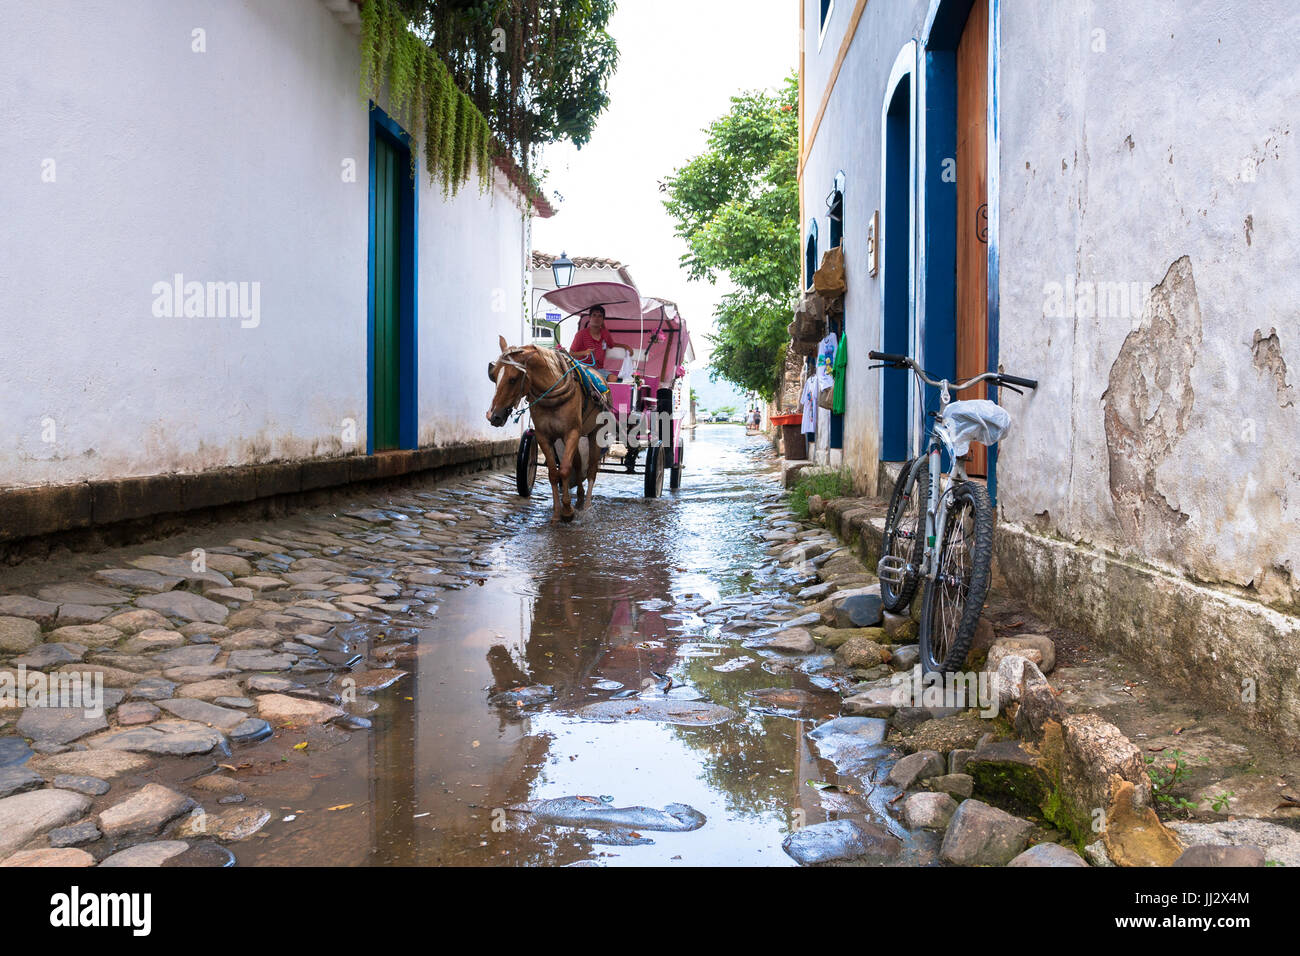 Horse pulls a cart along cobblestone street  flooded by incoming tide alongside colonial houses, Paraty, Rio de - Stock Image